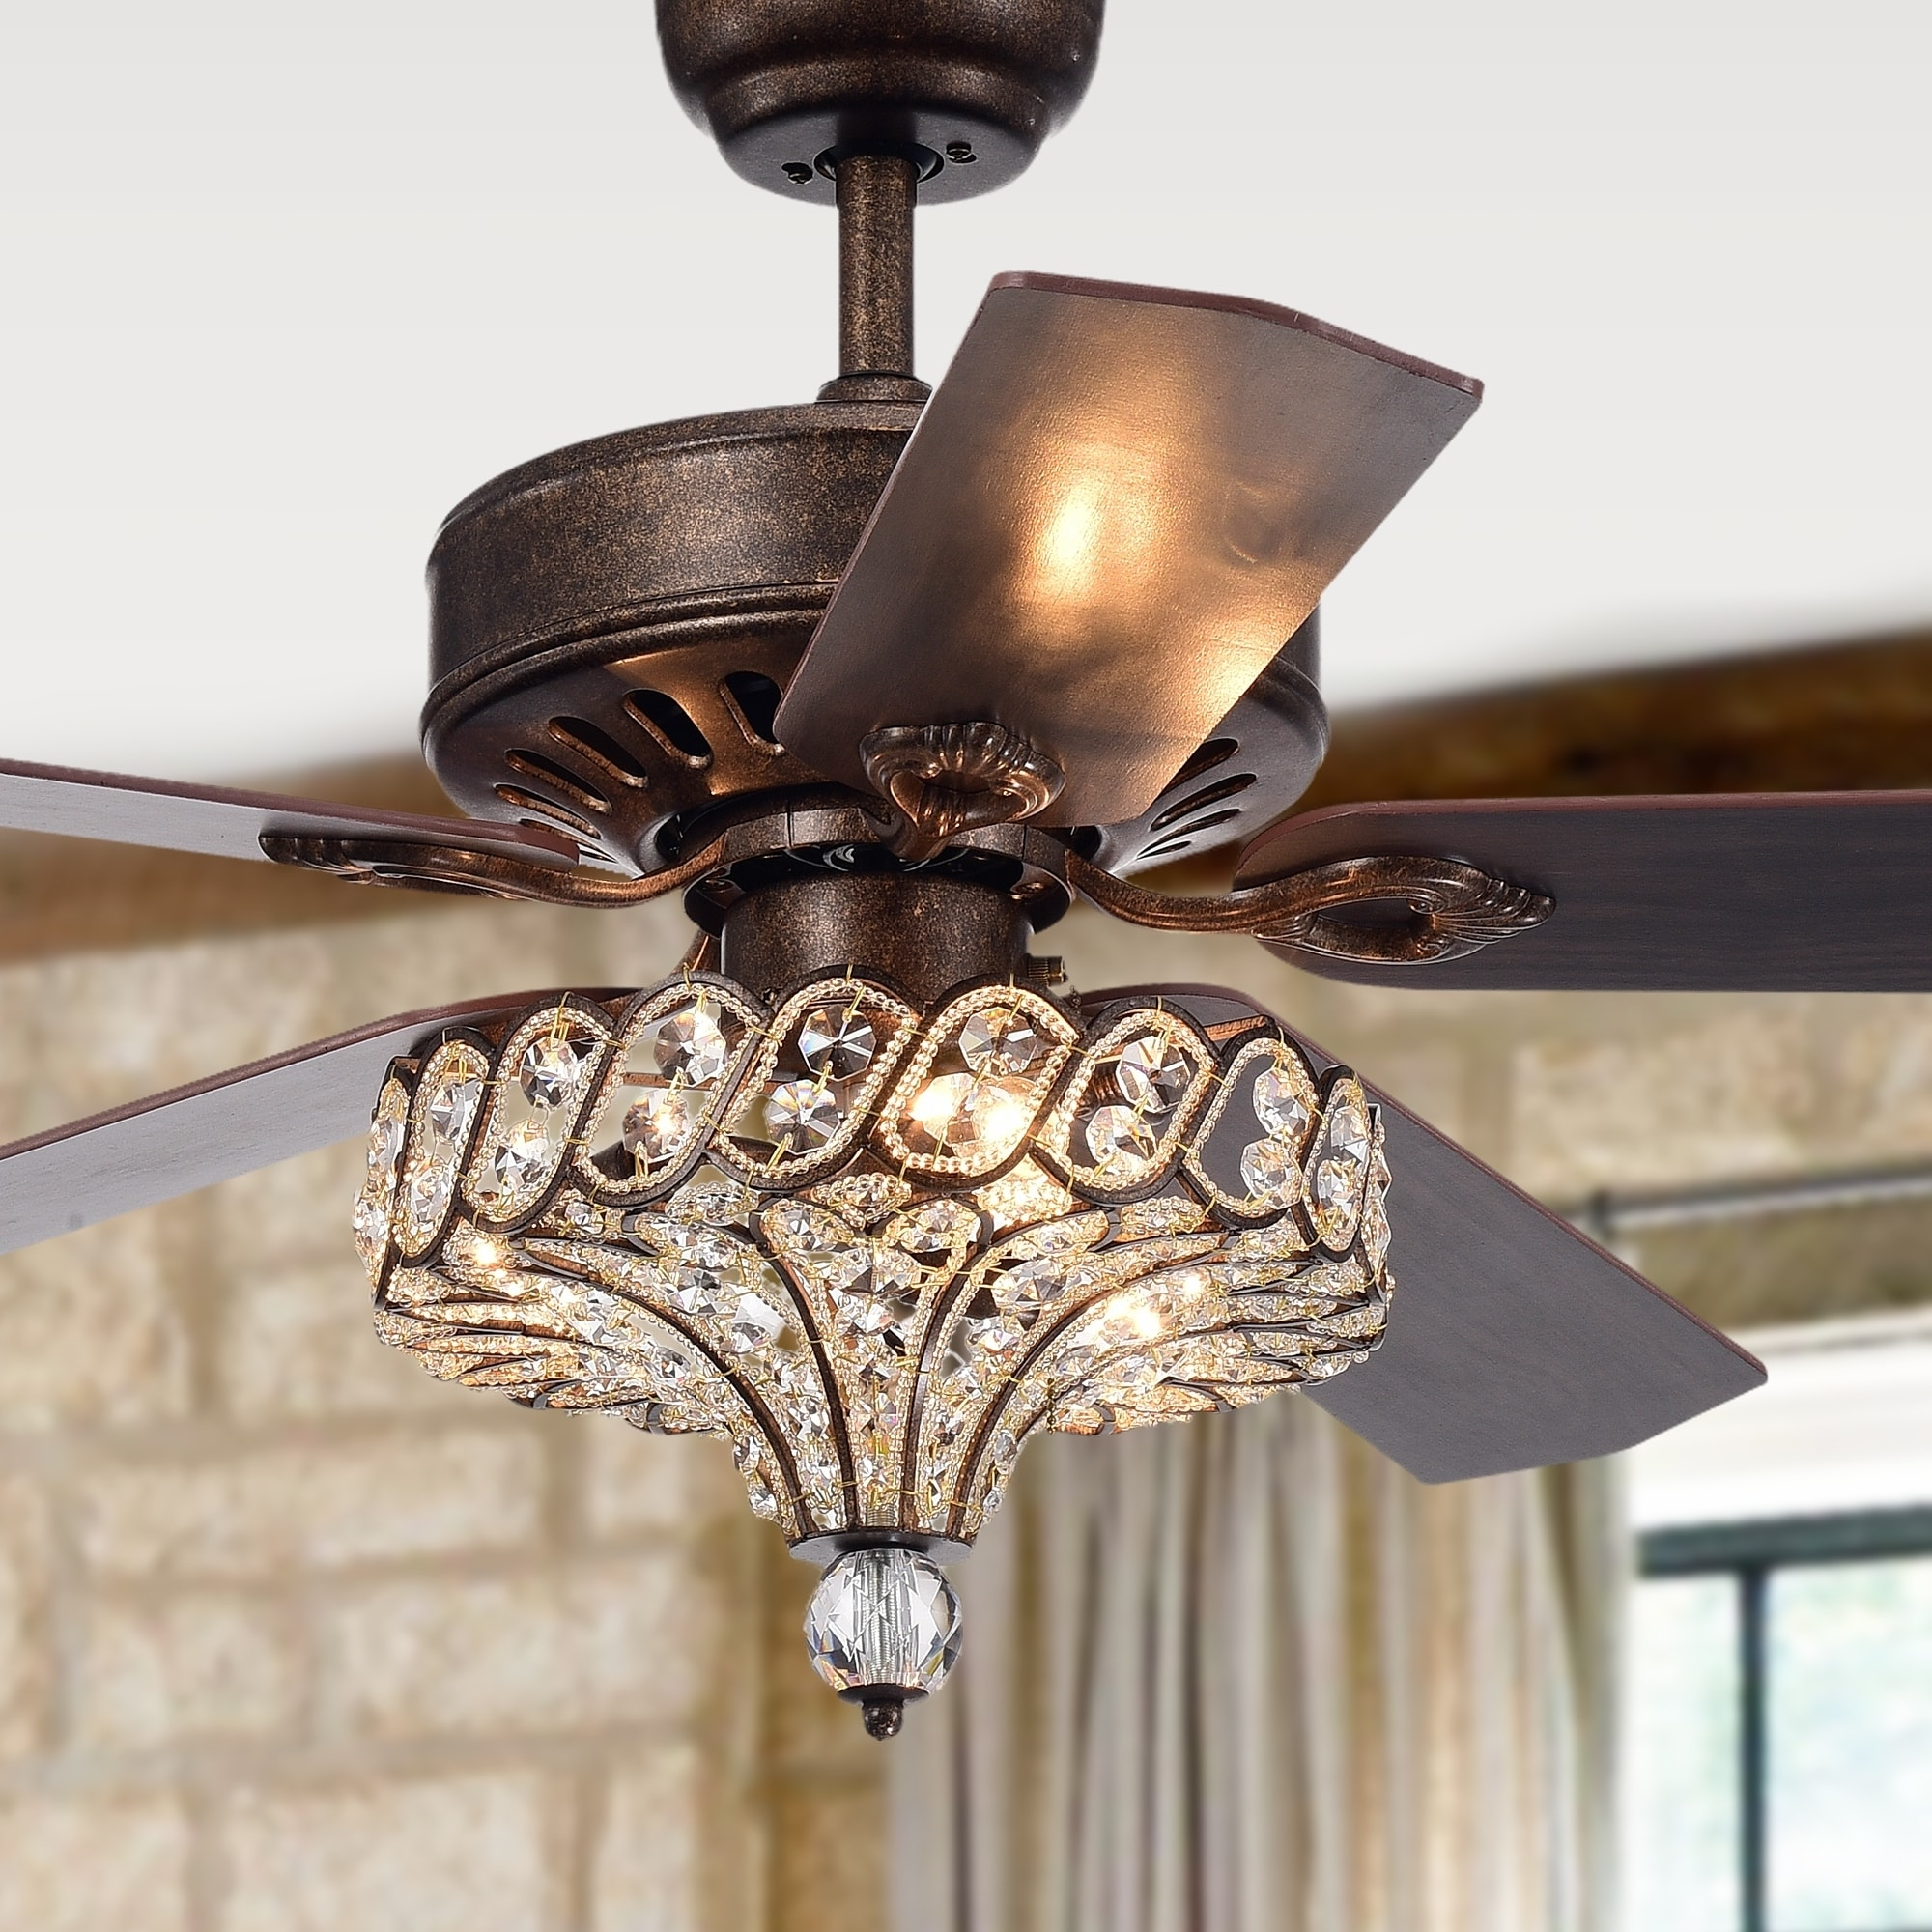 Shop Black Friday Deals On Pilette 5 Blade Antique Speckled Bronze Lighted Ceiling Fan W Crystal Shade Optional Remote Control Incl 2 Color Choice Blades On Sale Overstock 22966552